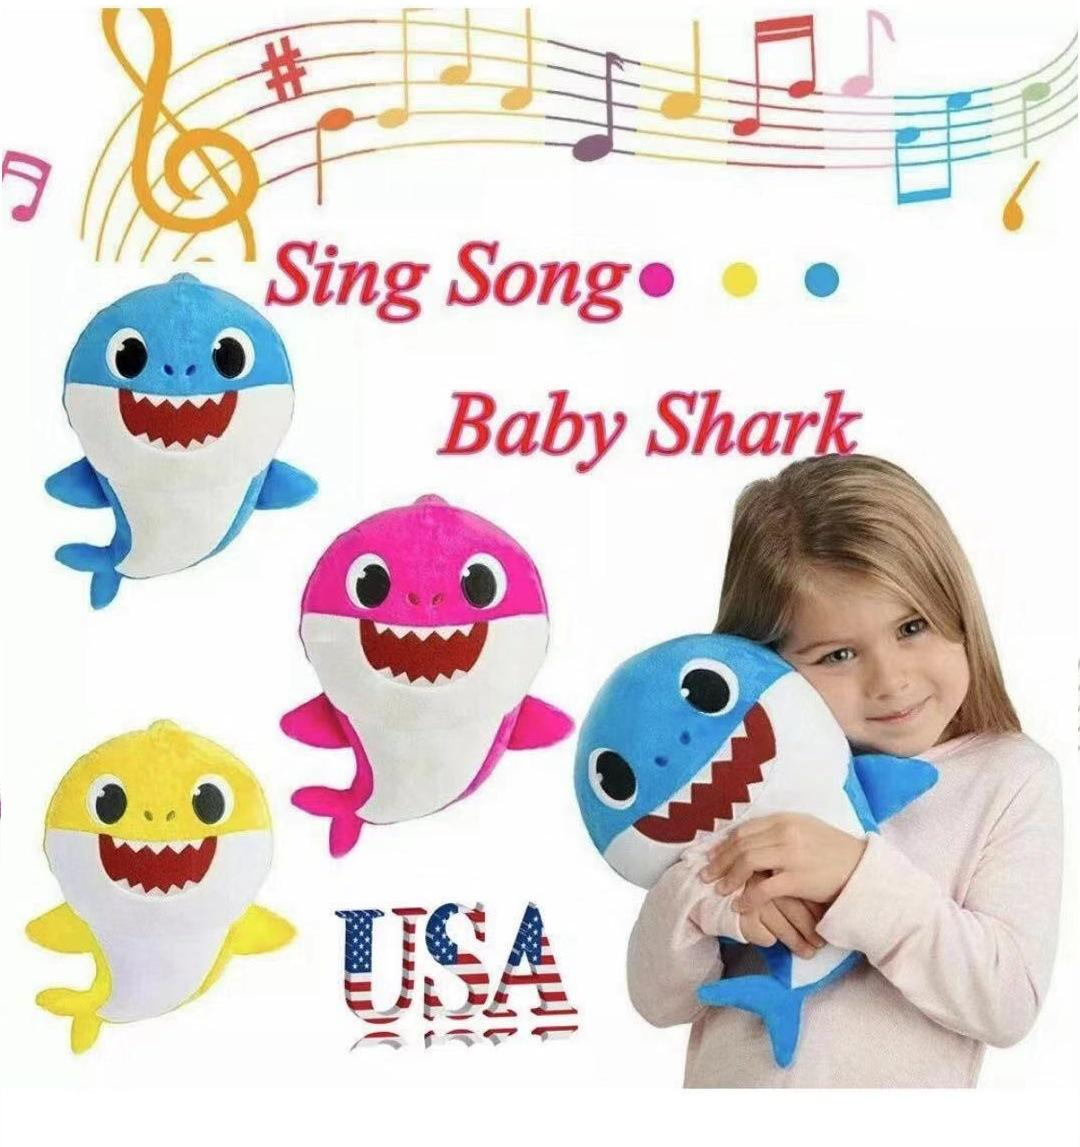 New Baby Shark Plush Singing Plush Toys Music Doll English Song Toy Gift